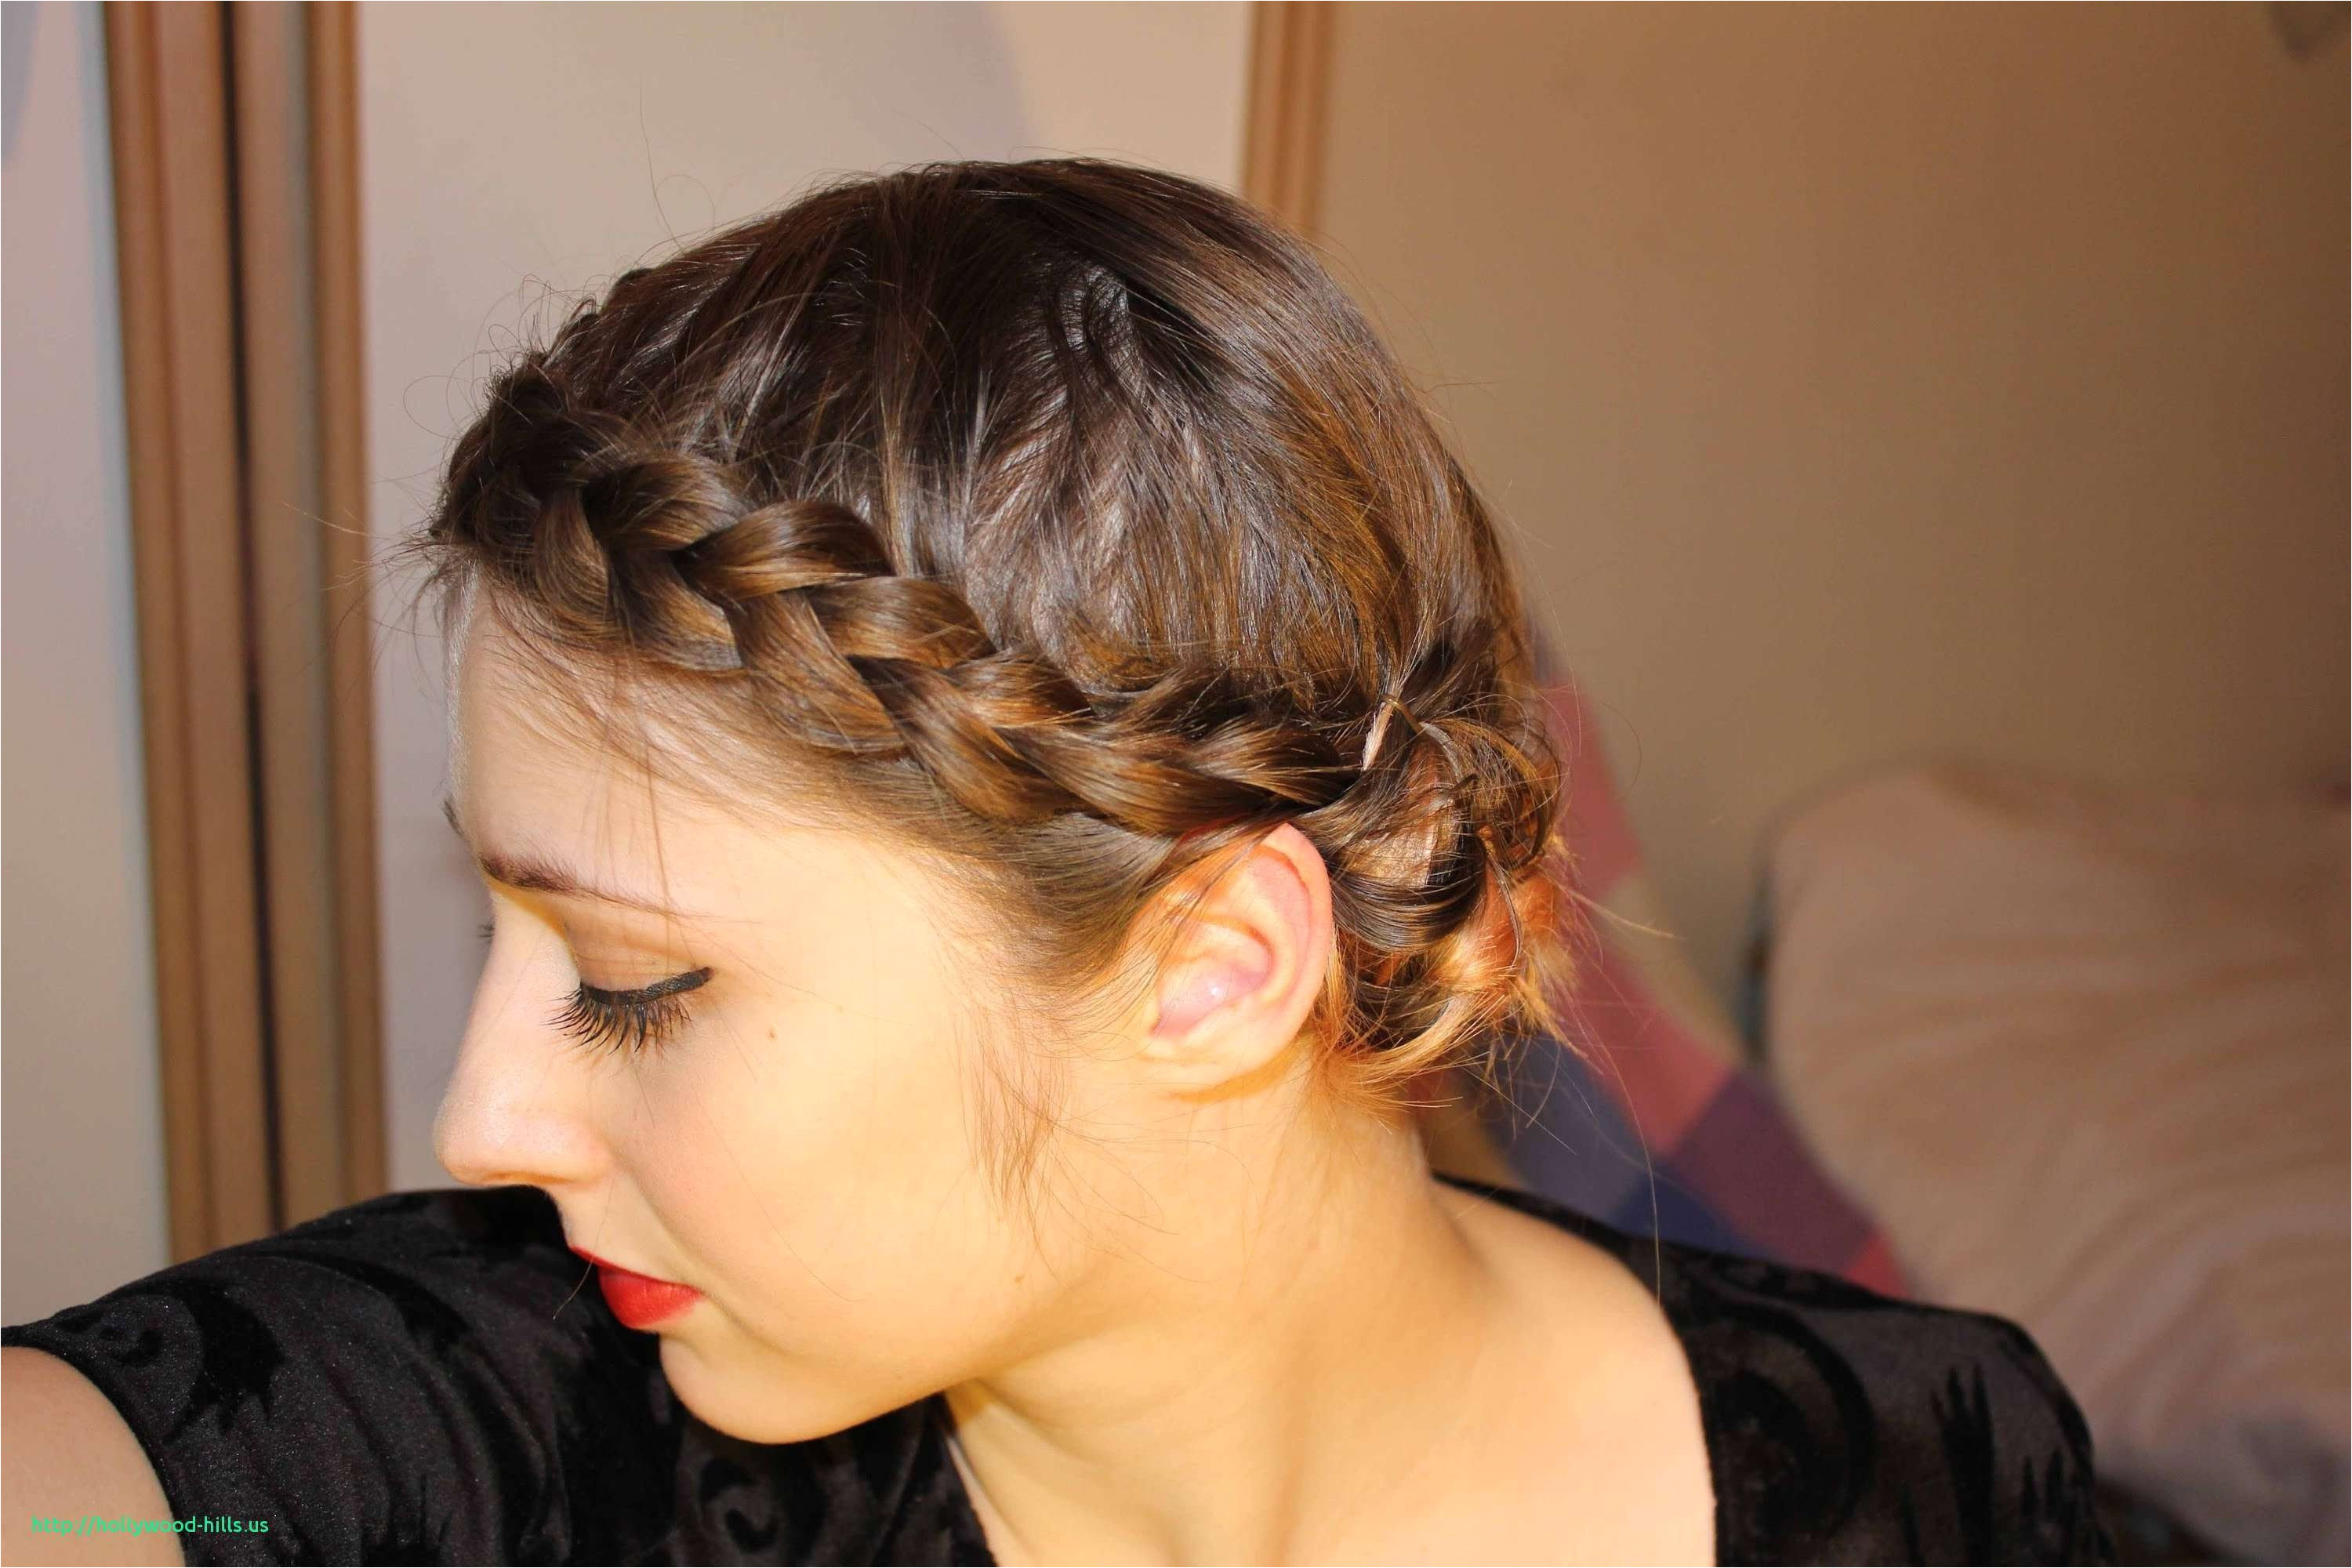 Girls Up Hairstyles Beautiful Long Hair Updos Easy Mesmerizing Hairstyles How to Awesome Braided Girls